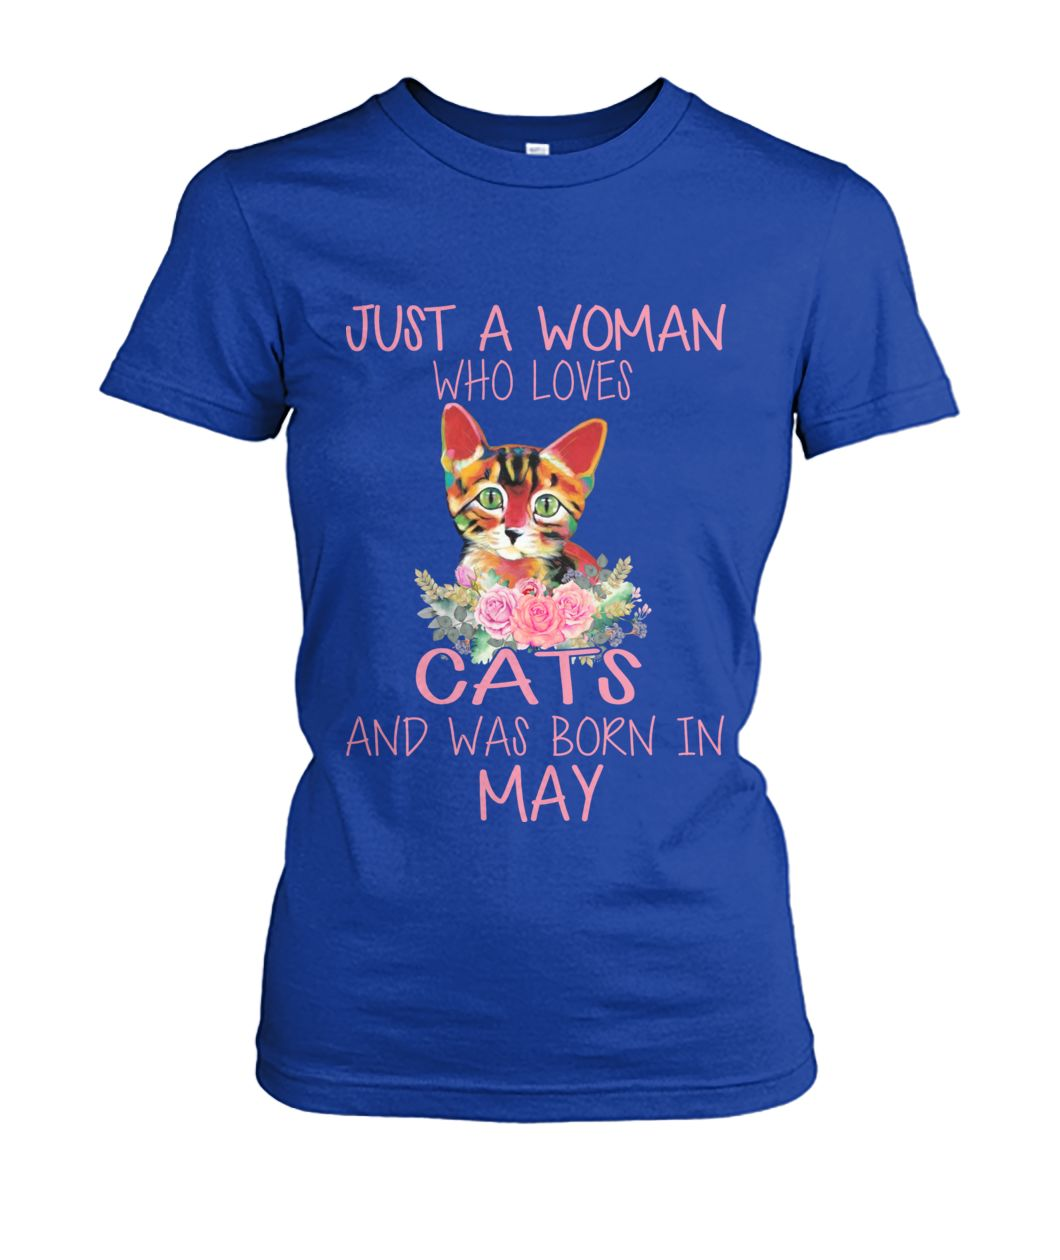 just a woman who loves cats and was born in may tshirt